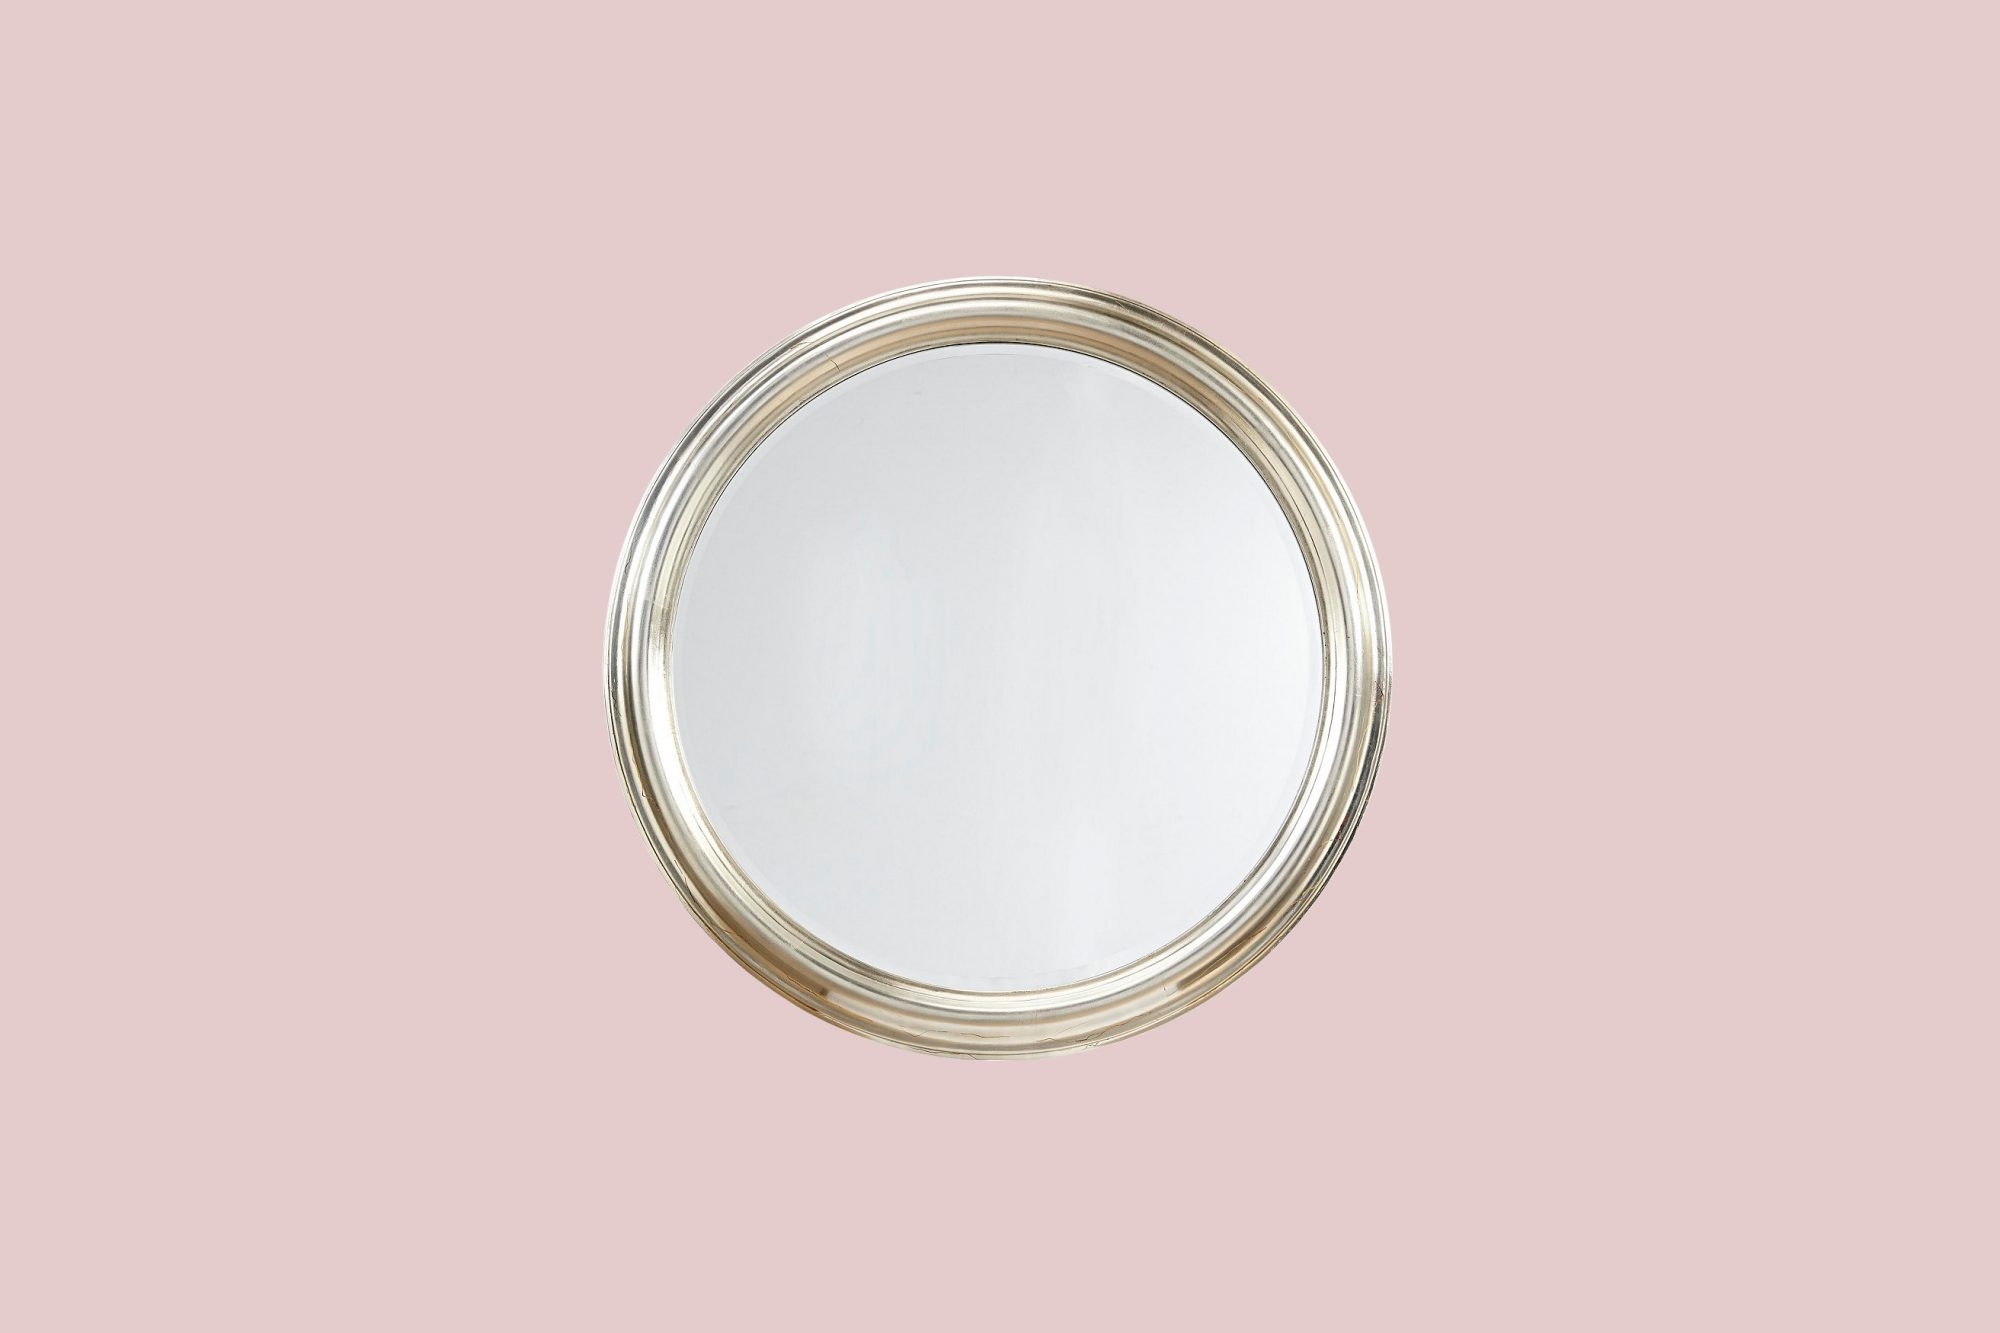 round metallic mirror